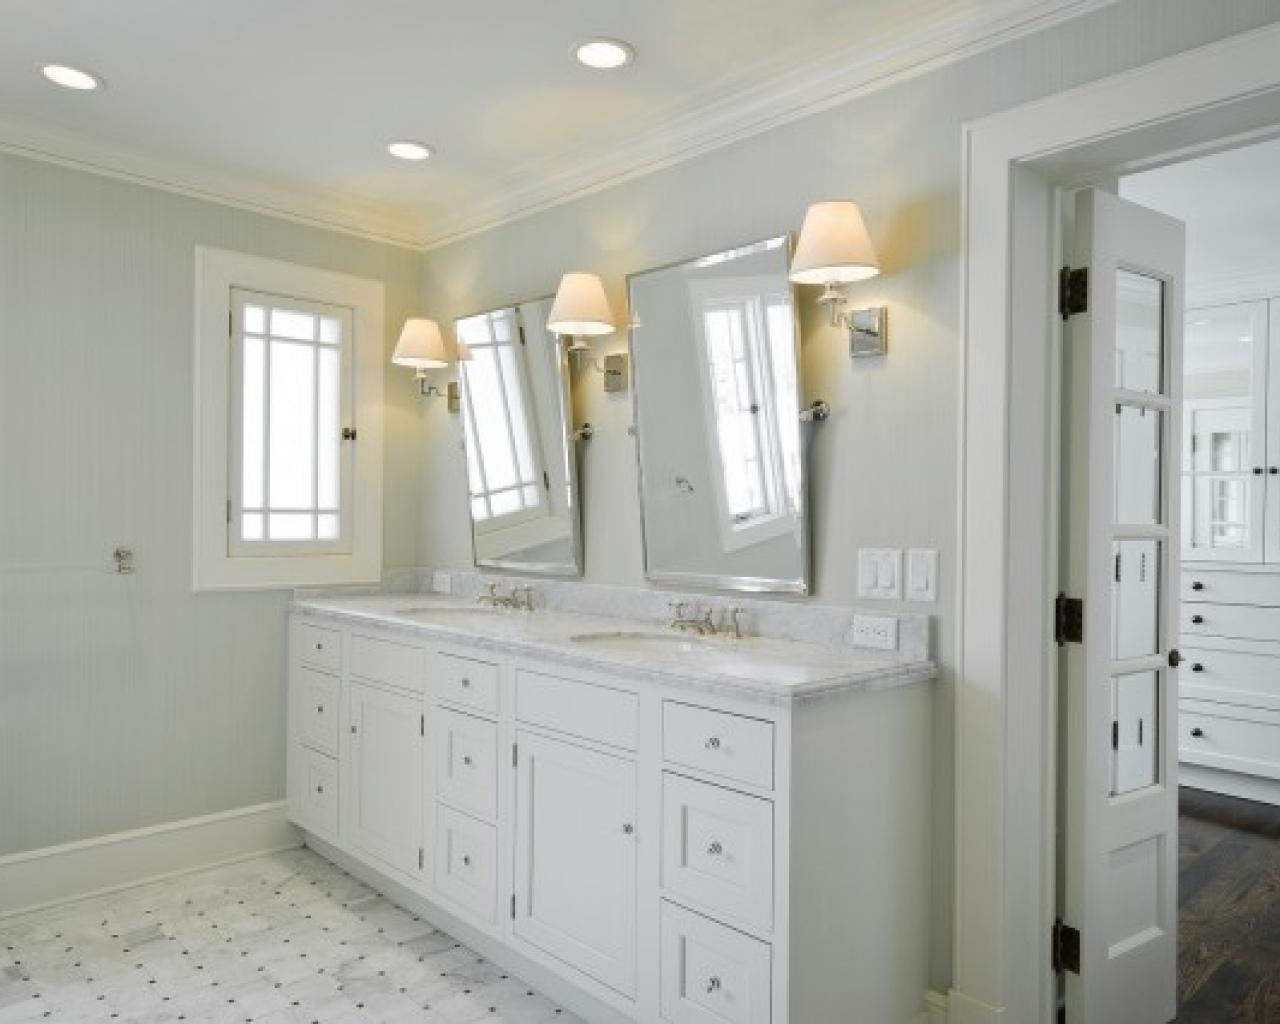 Bathroom Vanity Mirrors For Aesthetics And Functions – Traba Homes With Bathroom Vanities Mirrors (Image 12 of 20)